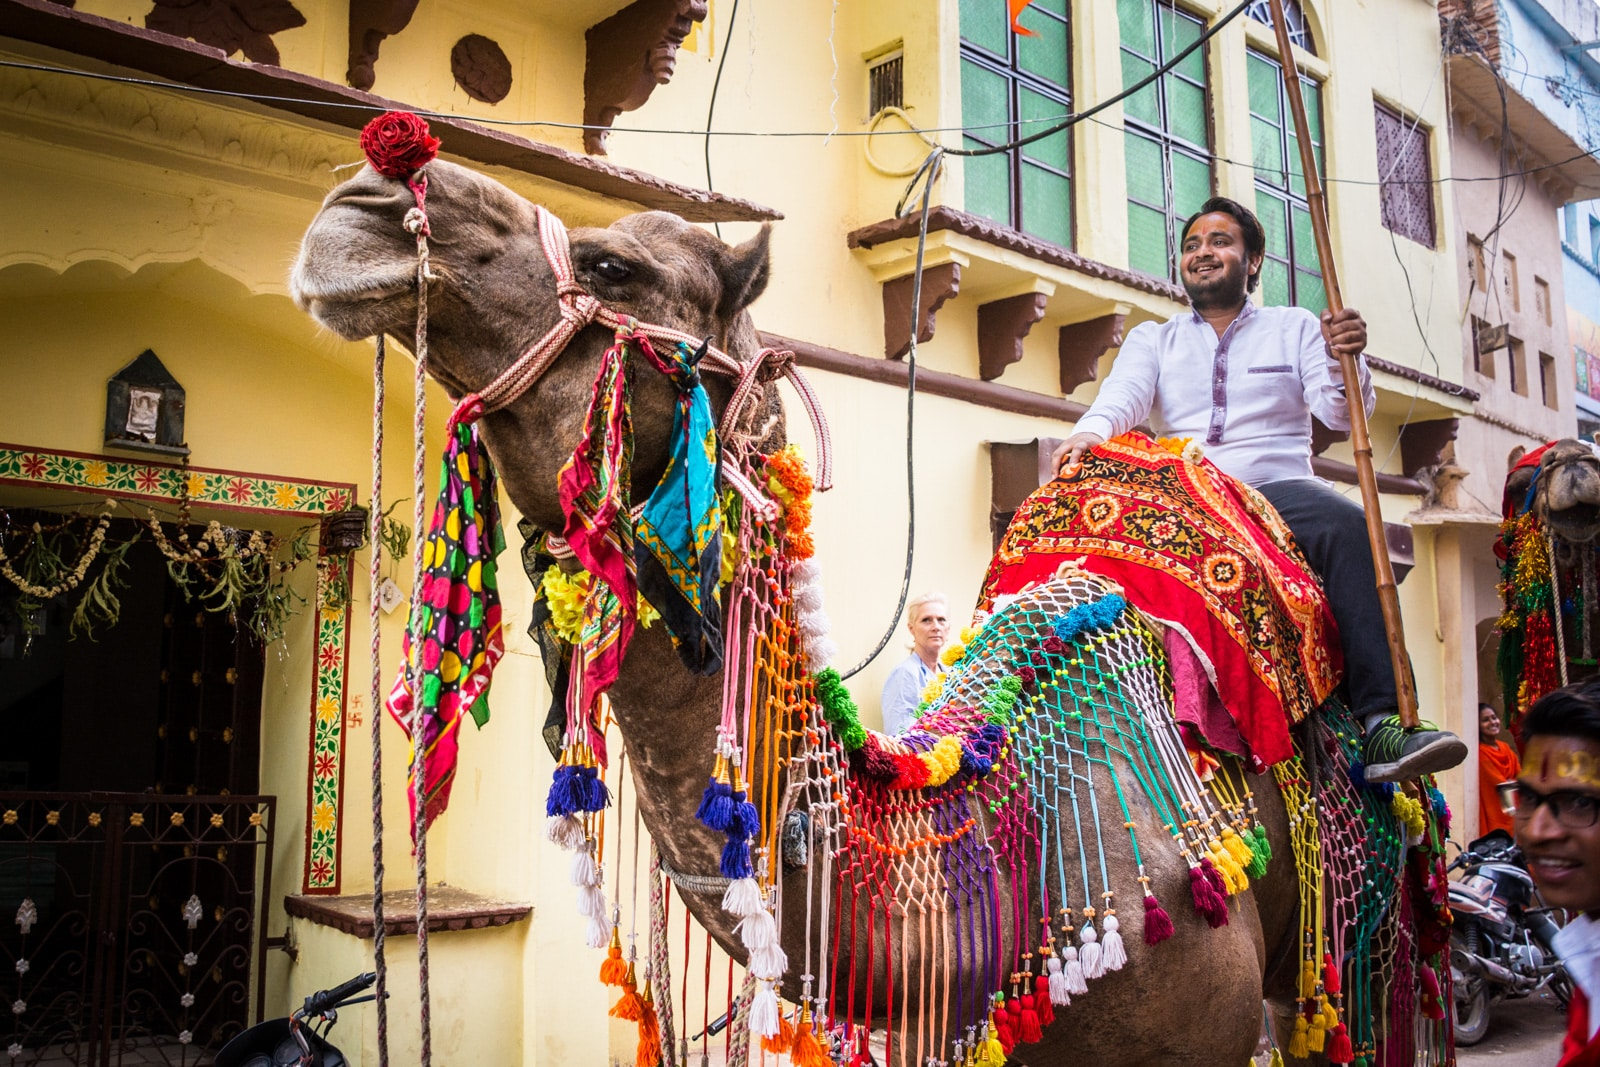 Falling in love with India - Colorful camels on the streets of Rajasthan - Lost With Purpose travel blog